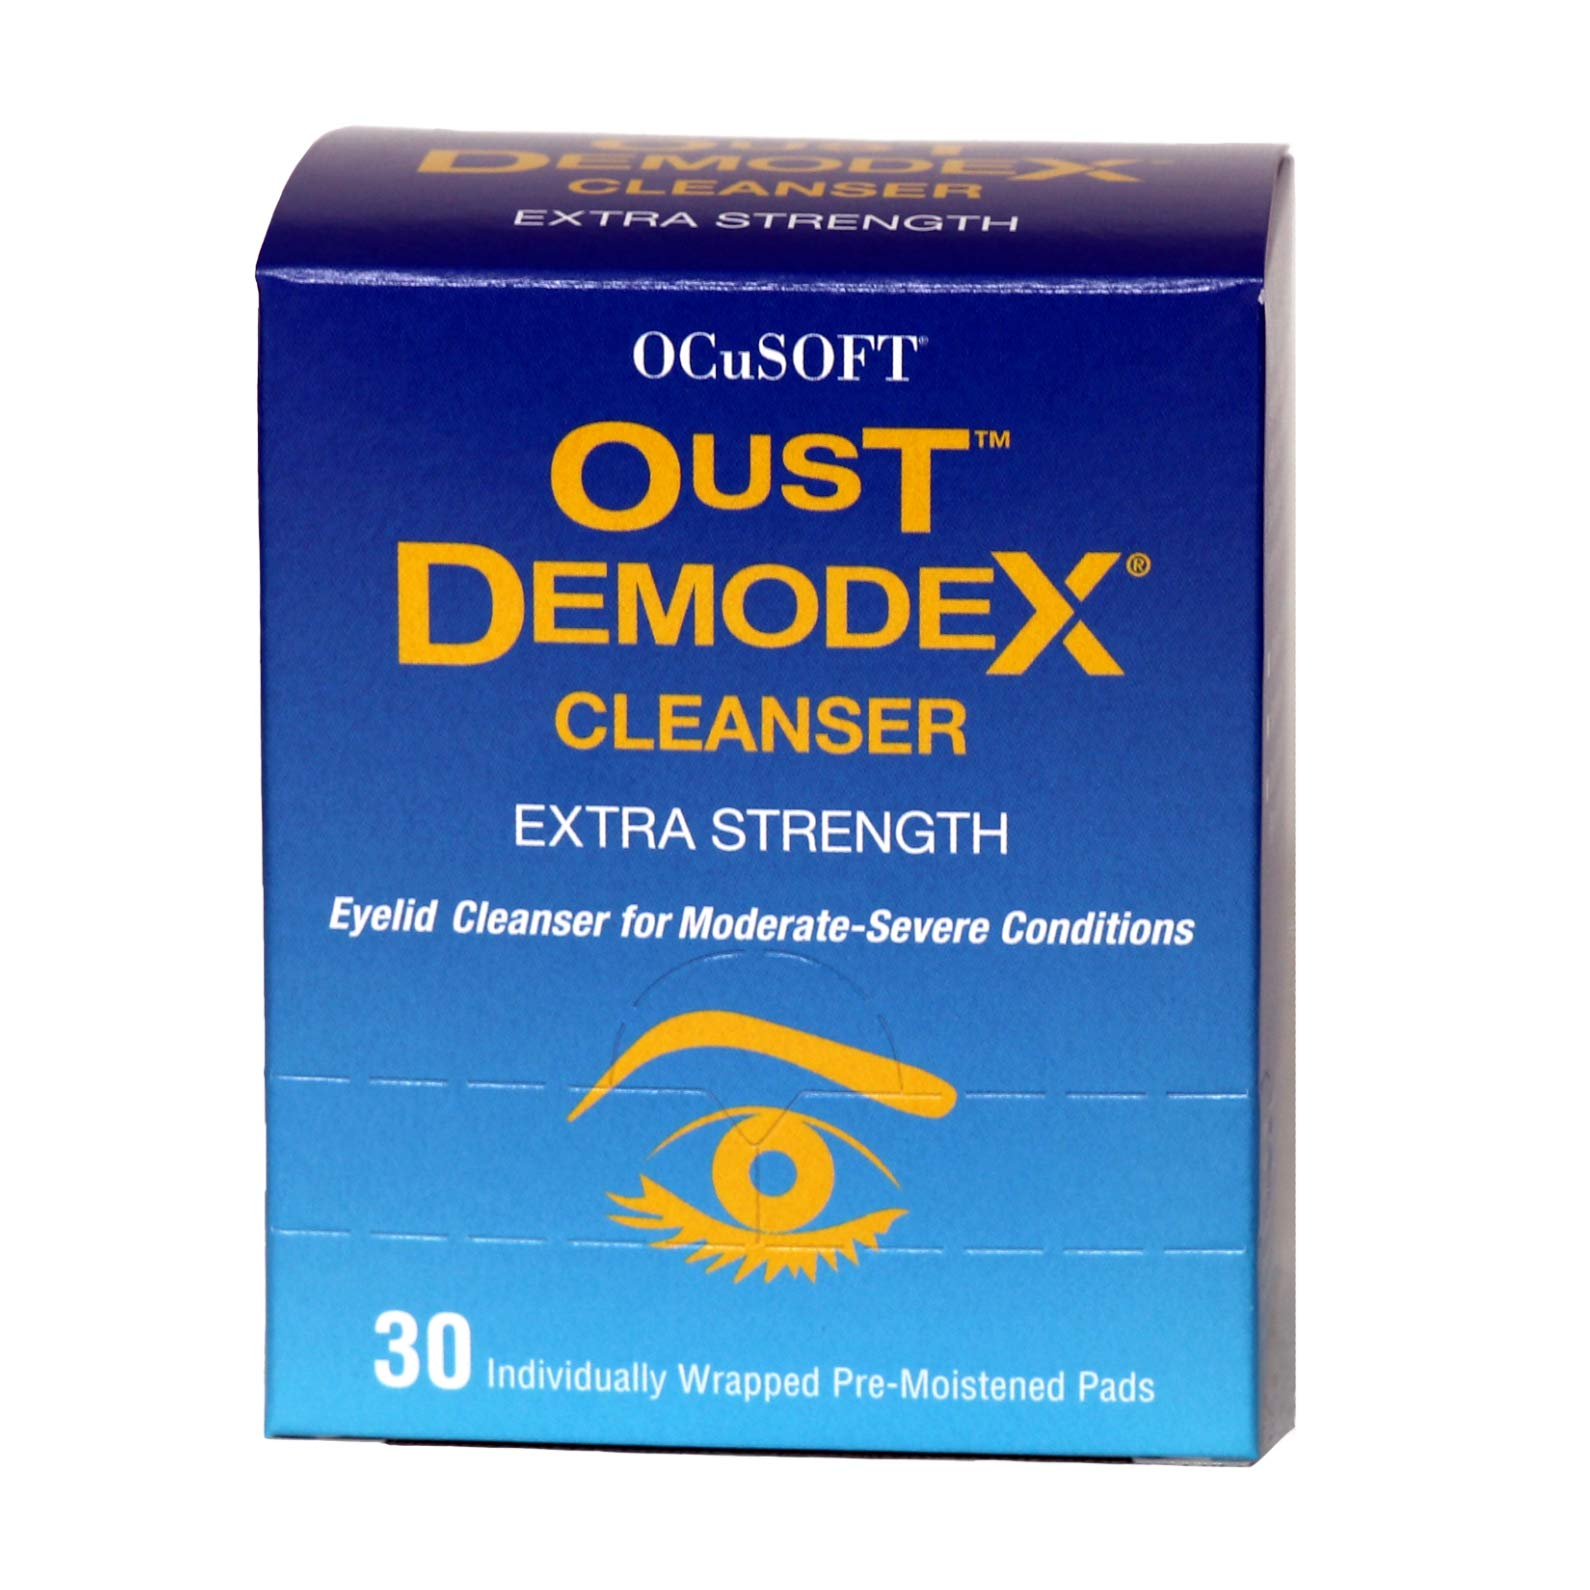 Oust Demodex Cleanser (Extra Strength) - 30 Pre-Moistened Pads by Oust Demodex